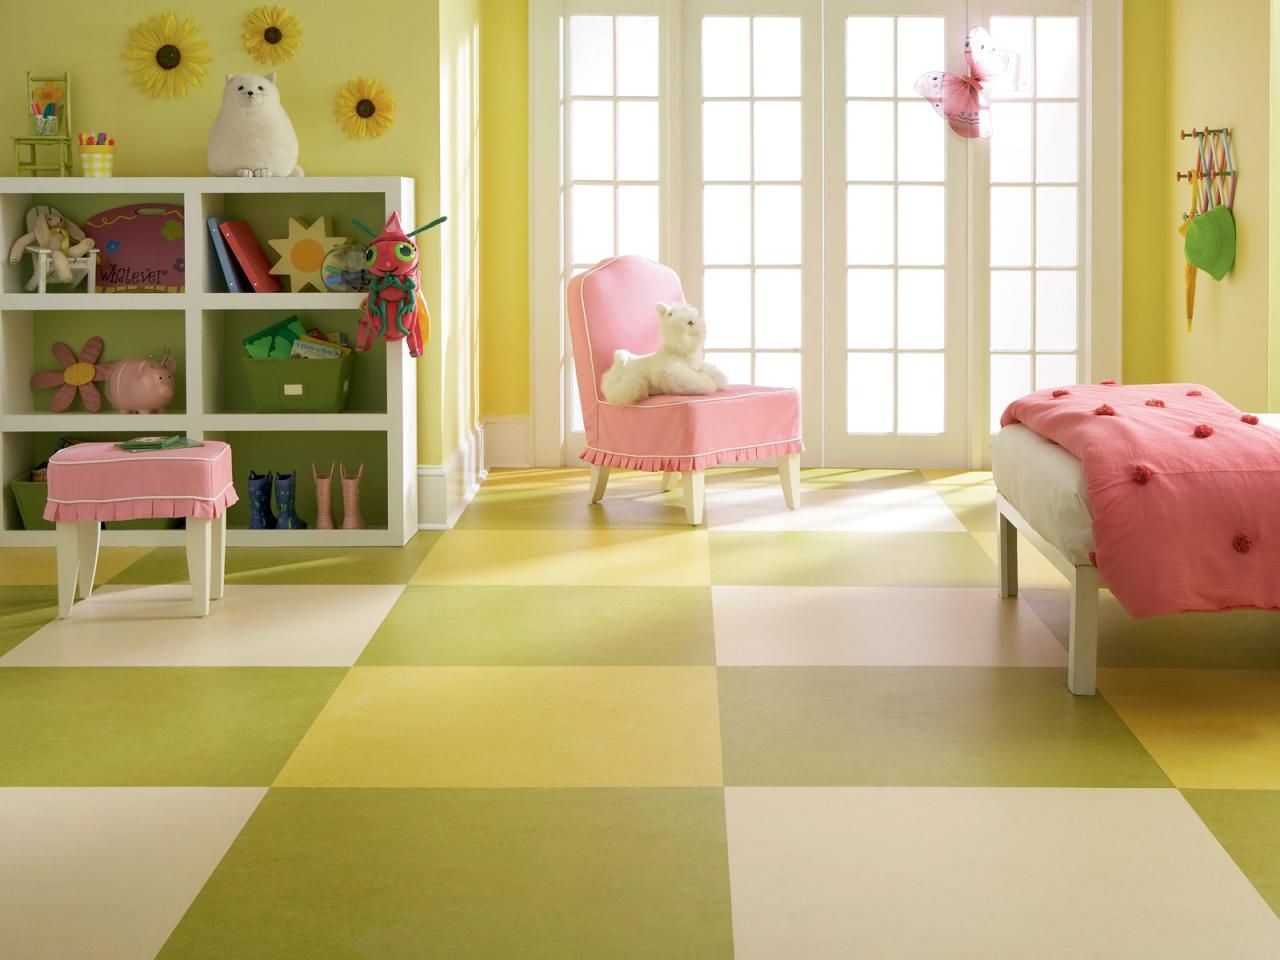 bedroom floor designs. Linoleum Floors Bedroom Floor Designs